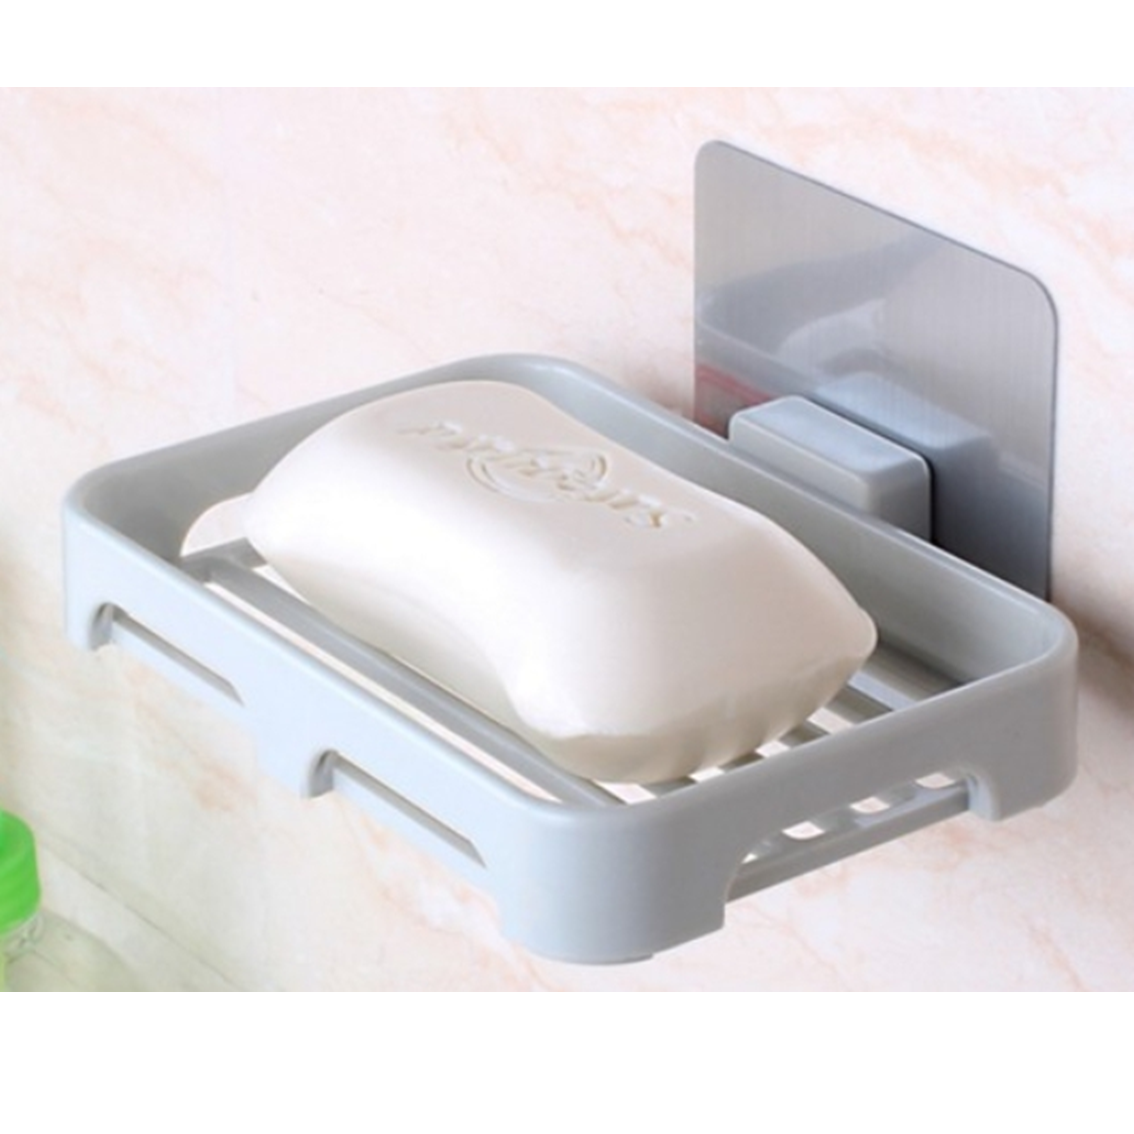 Suction Soap Dish with HooksPowerful Vacuum Suction Cup Soap Holder